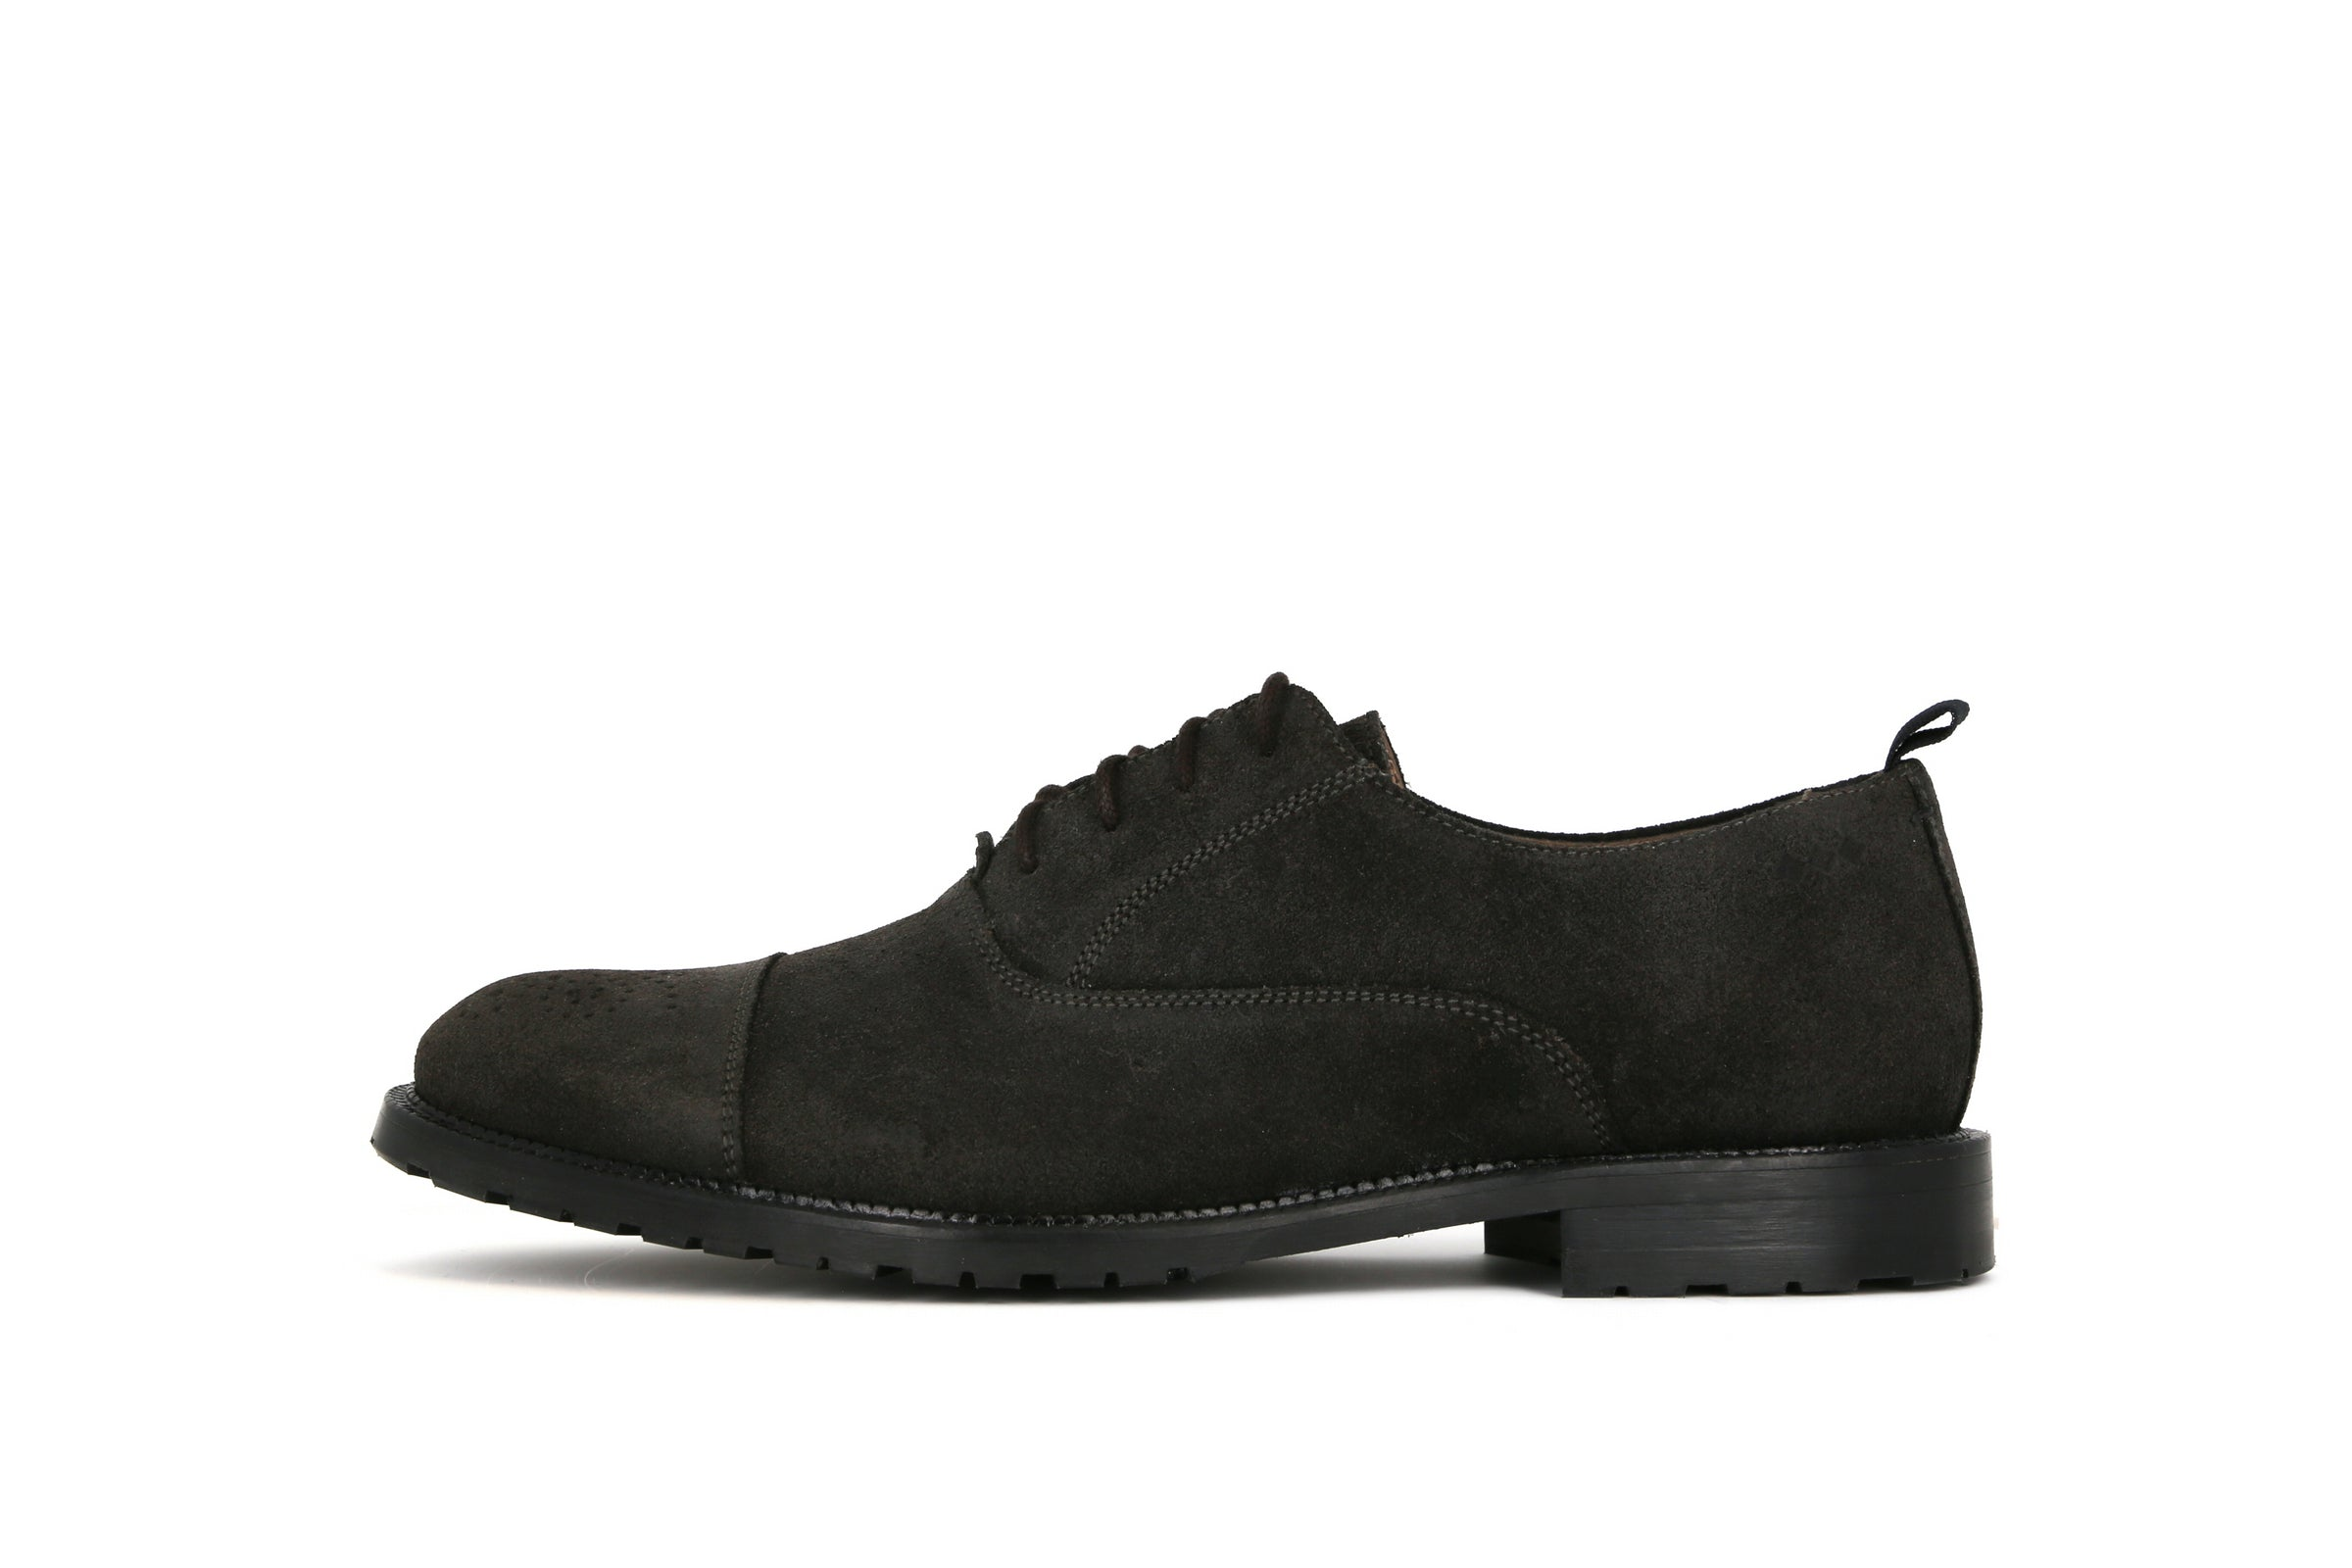 Alias City Hiker Brogue Oxford Shoe Suede